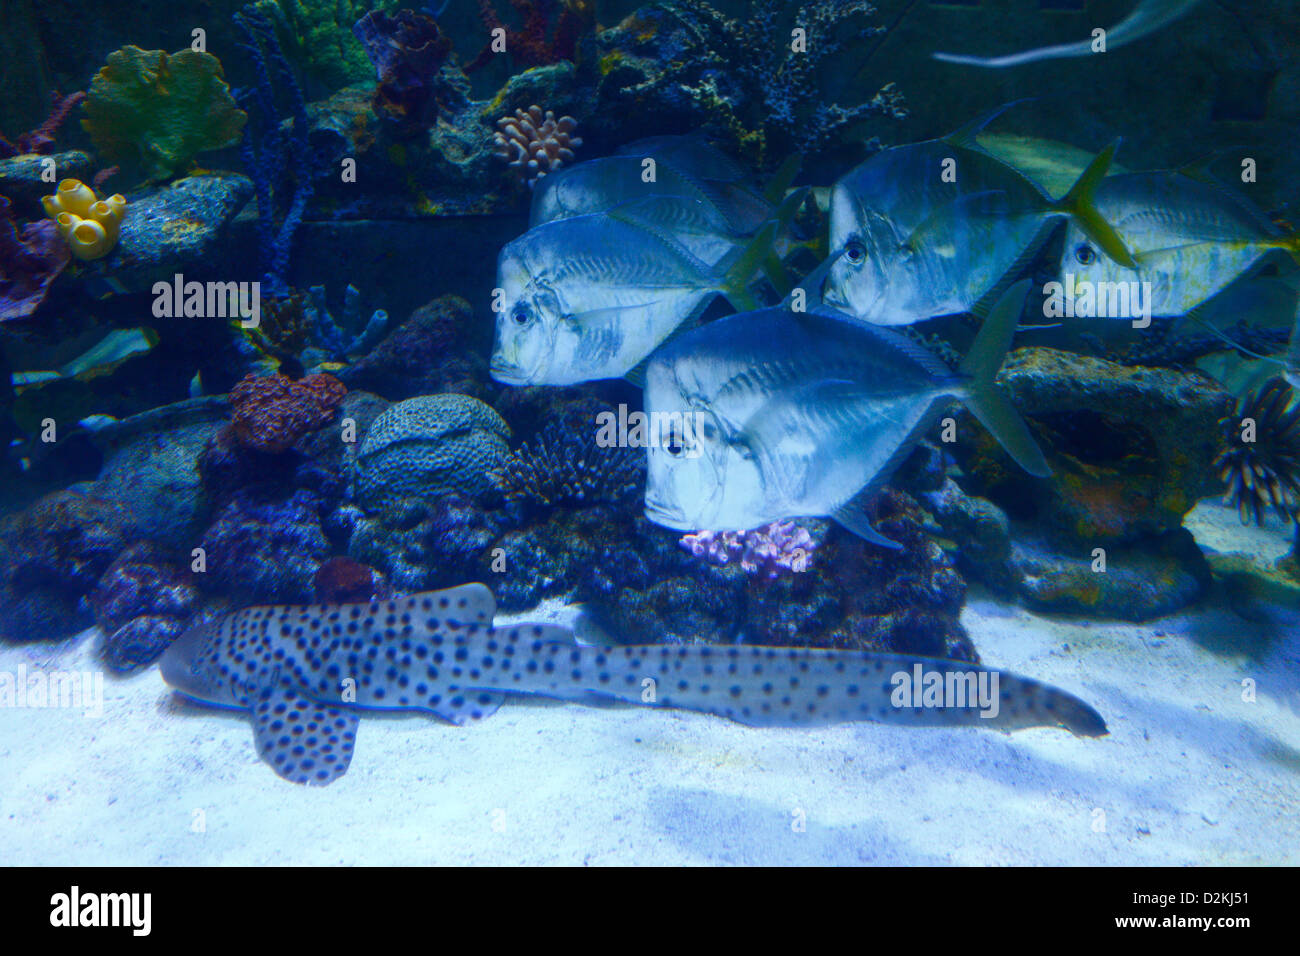 Fish in aquarium atlantis hotel resort nassau bahamas for Fishing nassau bahamas